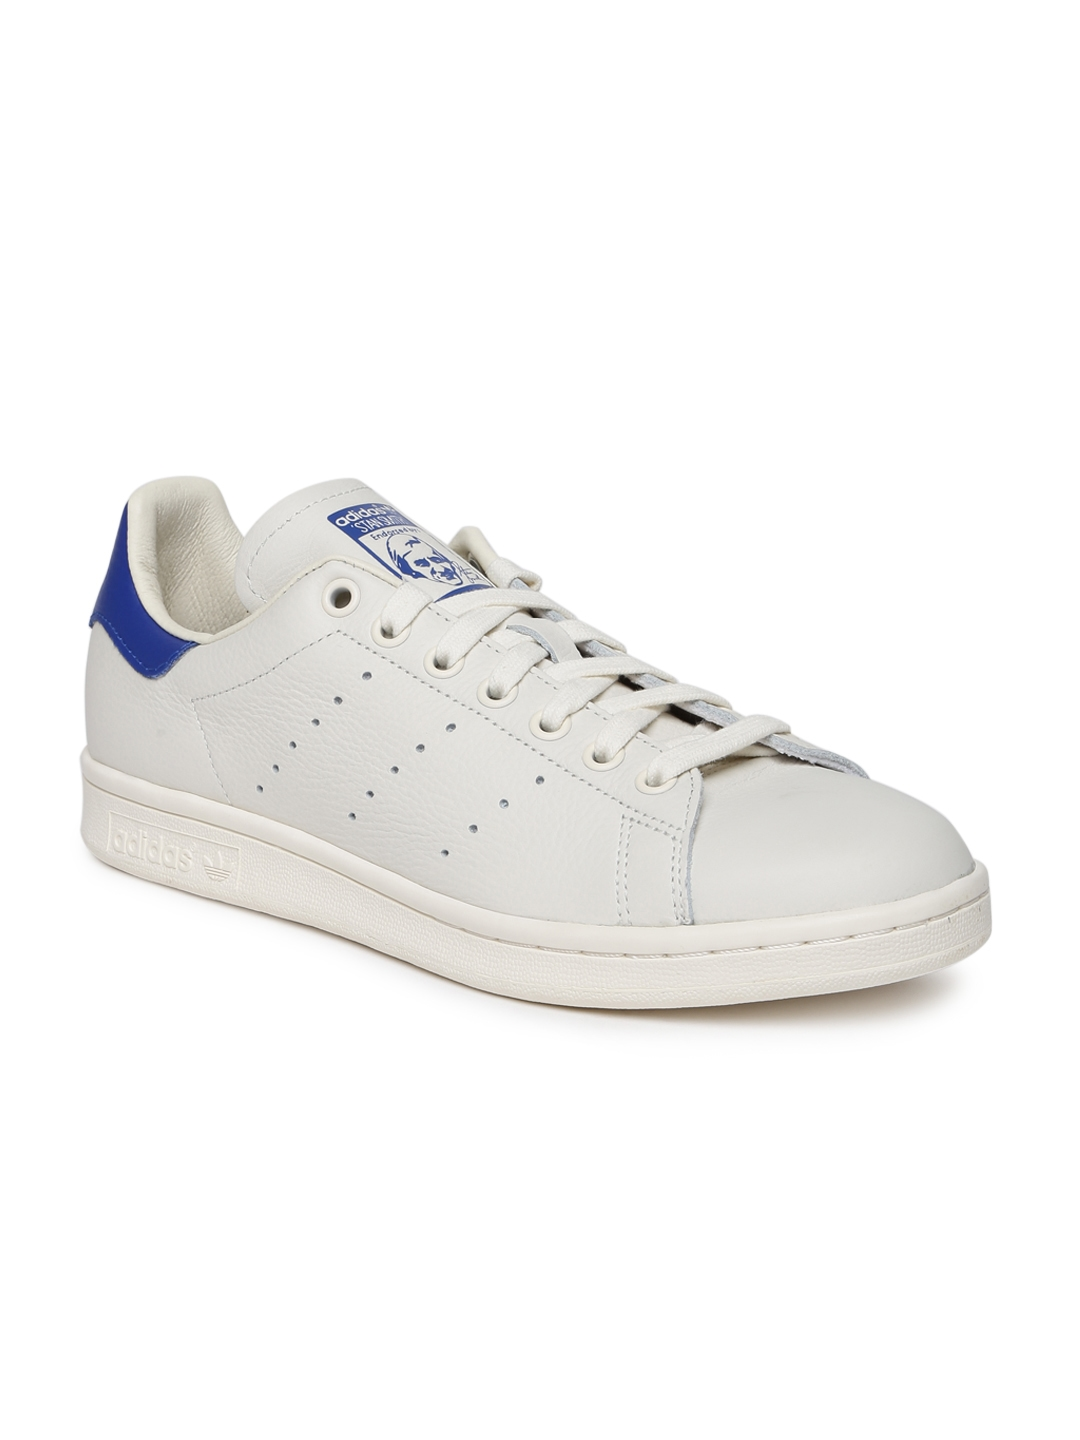 a6ebb4069 ADIDAS Originals Men STAN SMITH White Perforated Leather Sneakers